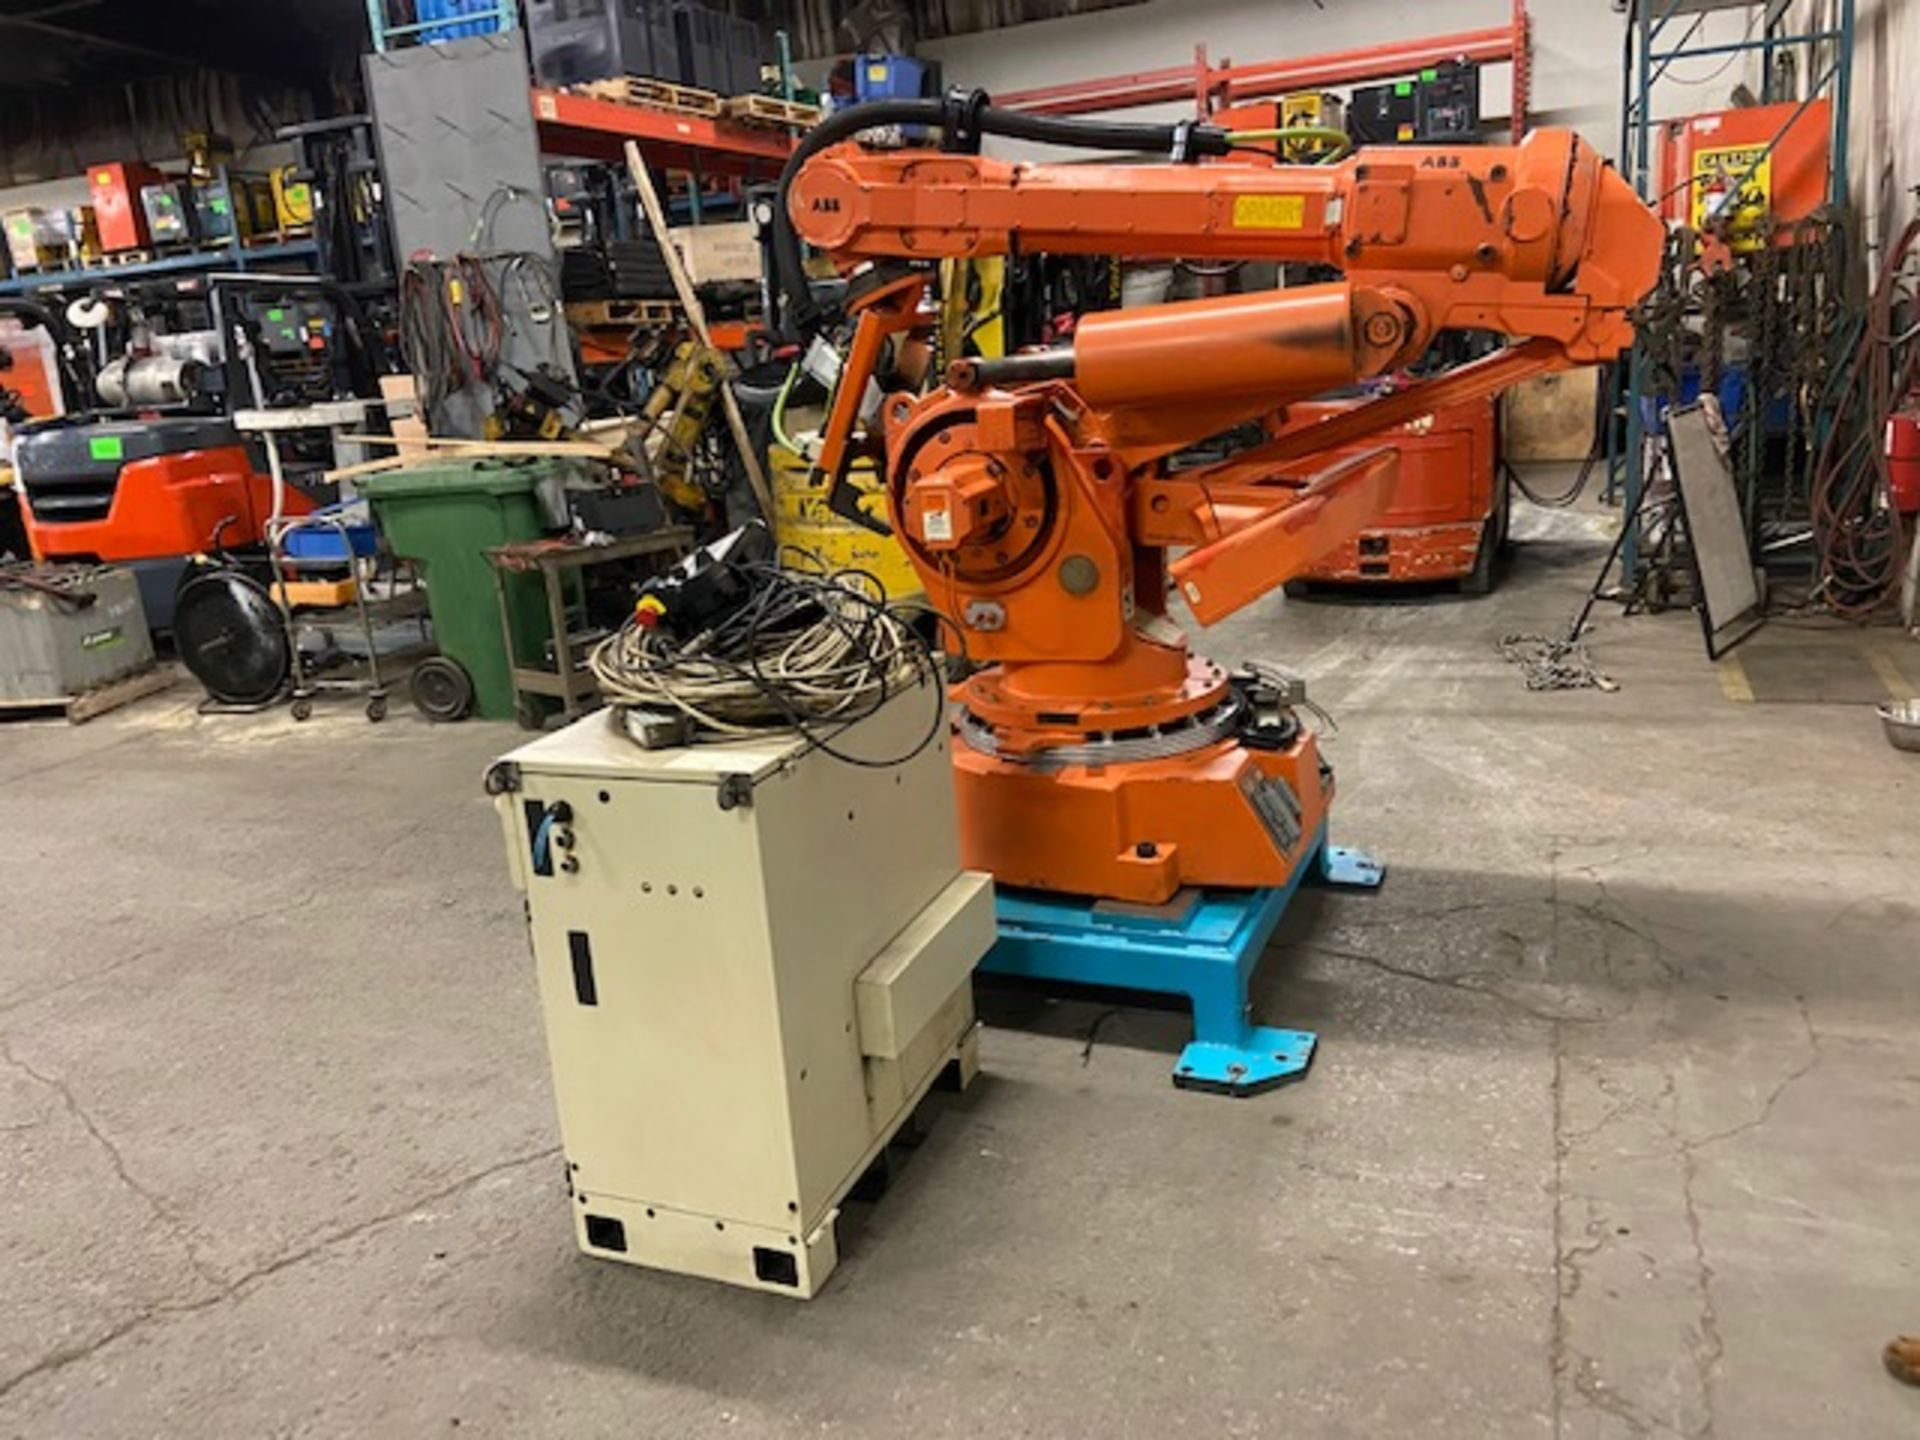 2008 ABB Robot IRB 6400 Handling Robot with ABB Controller & Teach Pendant and Cables complete - Image 3 of 4